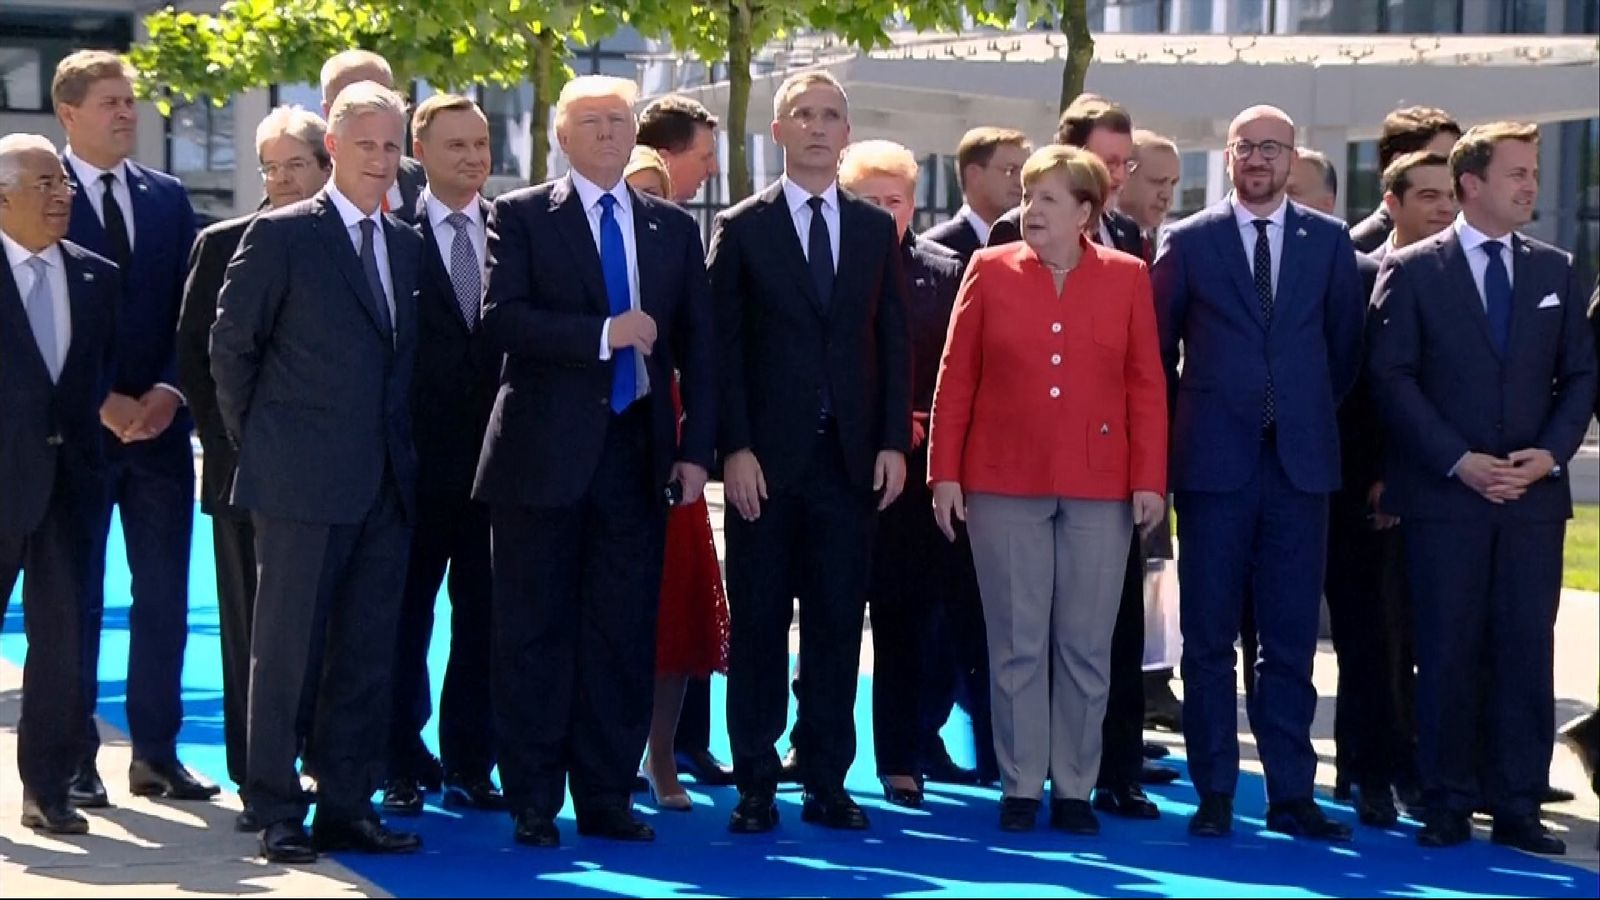 Europe can no longer rely on US, Britain: Merkel